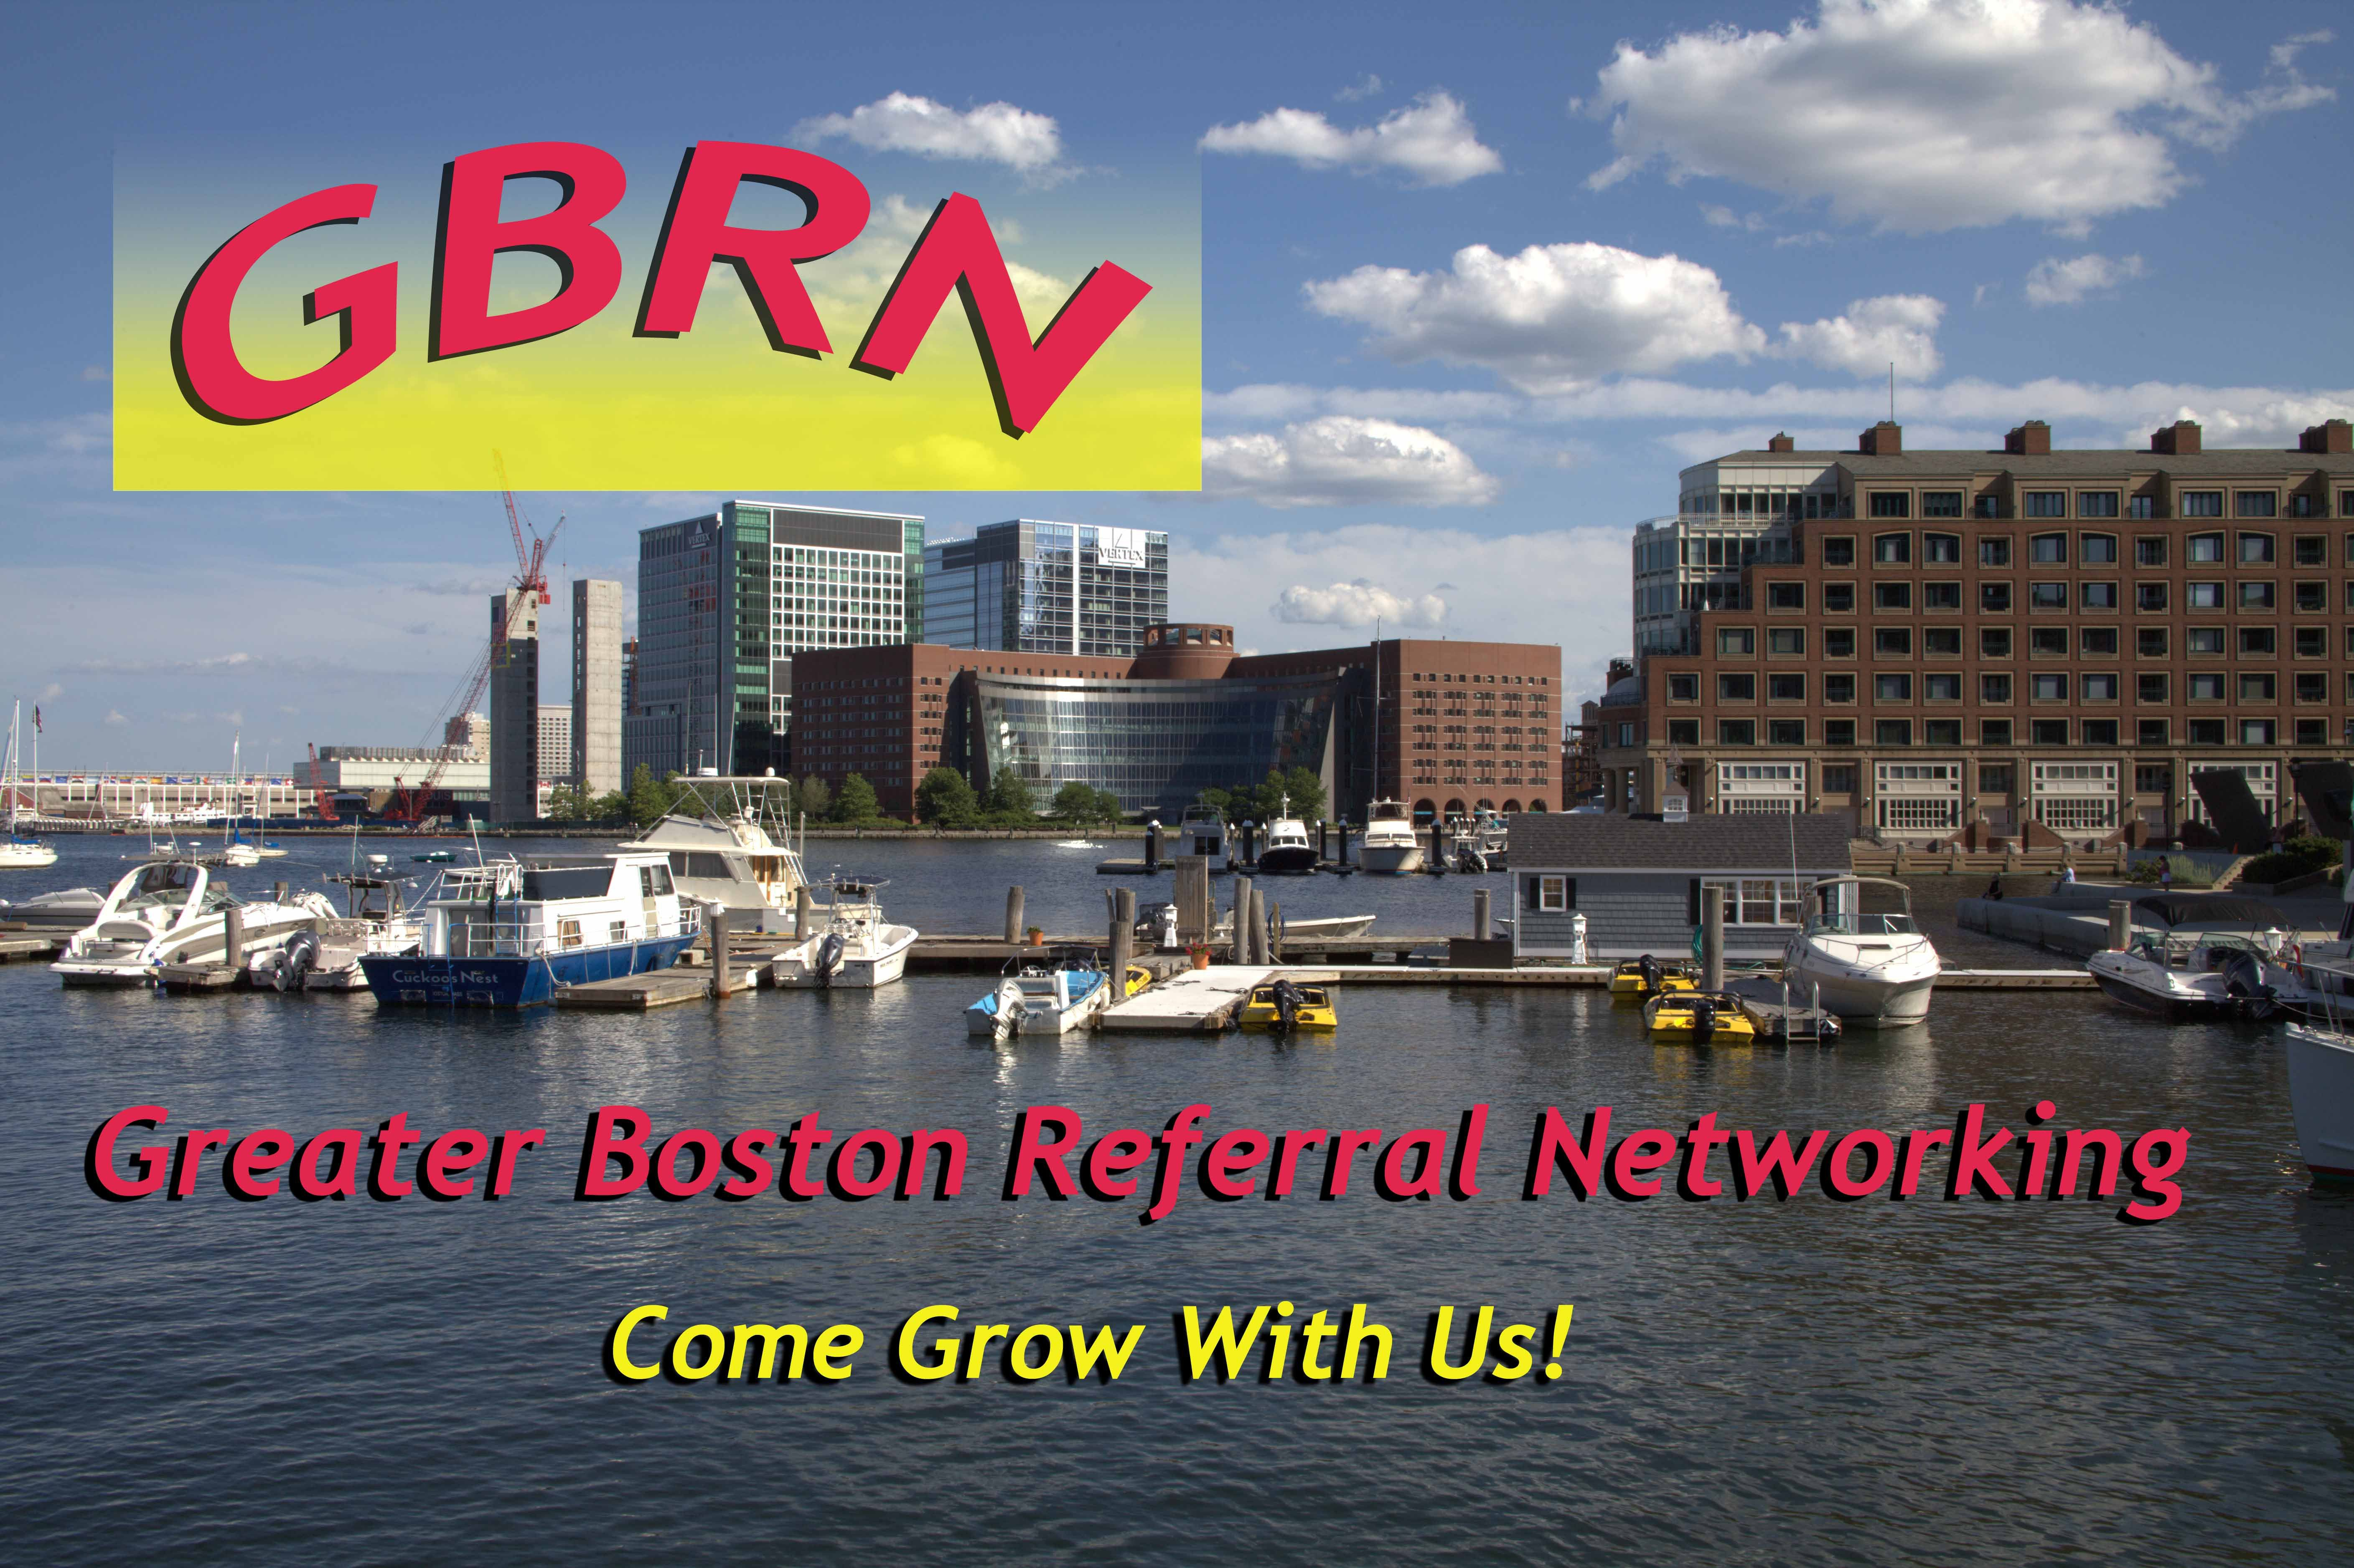 free business networking in braintree mar. 8 (multi group event